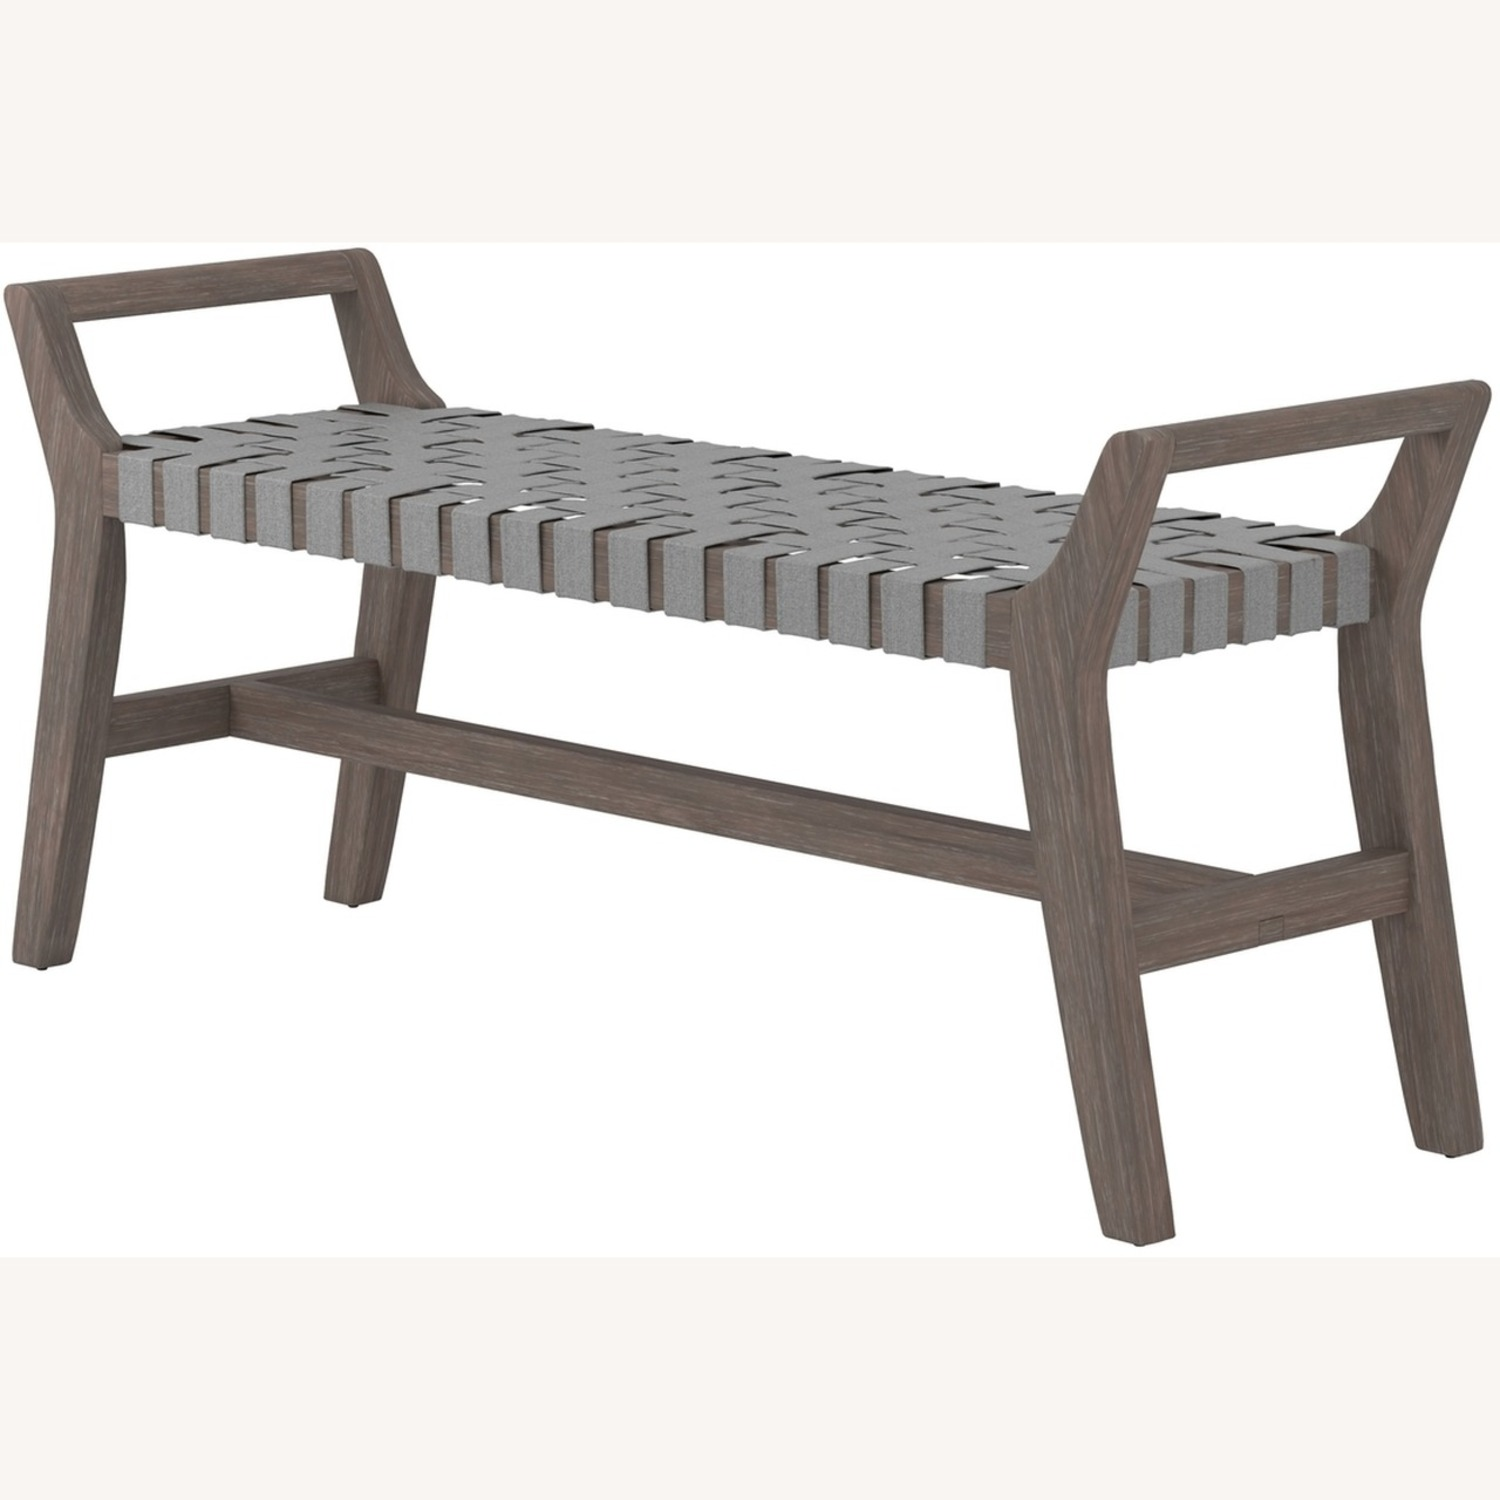 Modern Bench Made W/ Woven Grey Leatherette - image-1